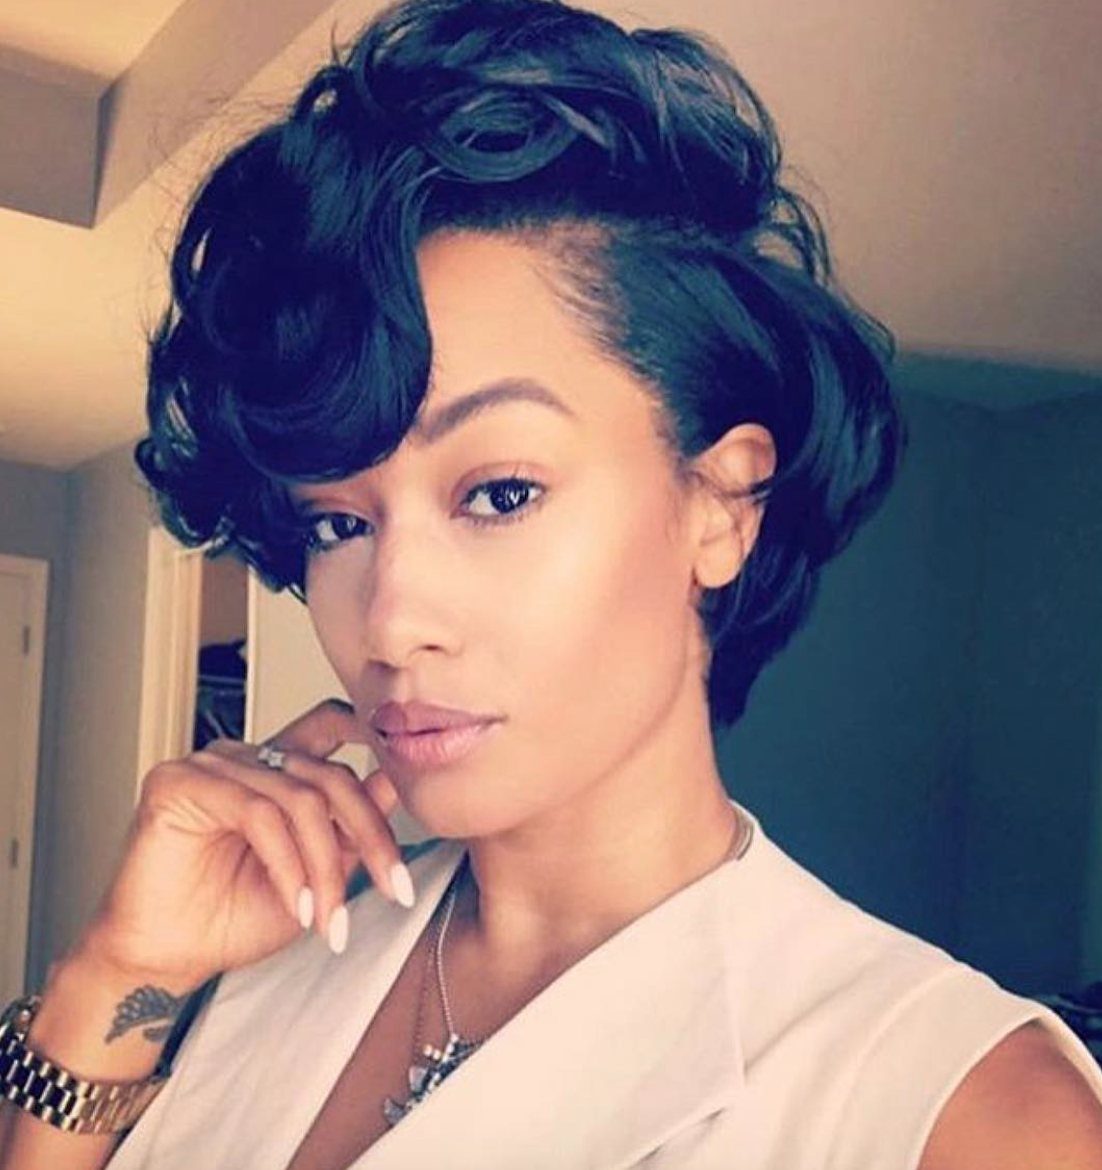 Pictures Of Short Black Hairstyles Beauteous Beautiful Luvcrystalrenee  Httpsblackhairinformation